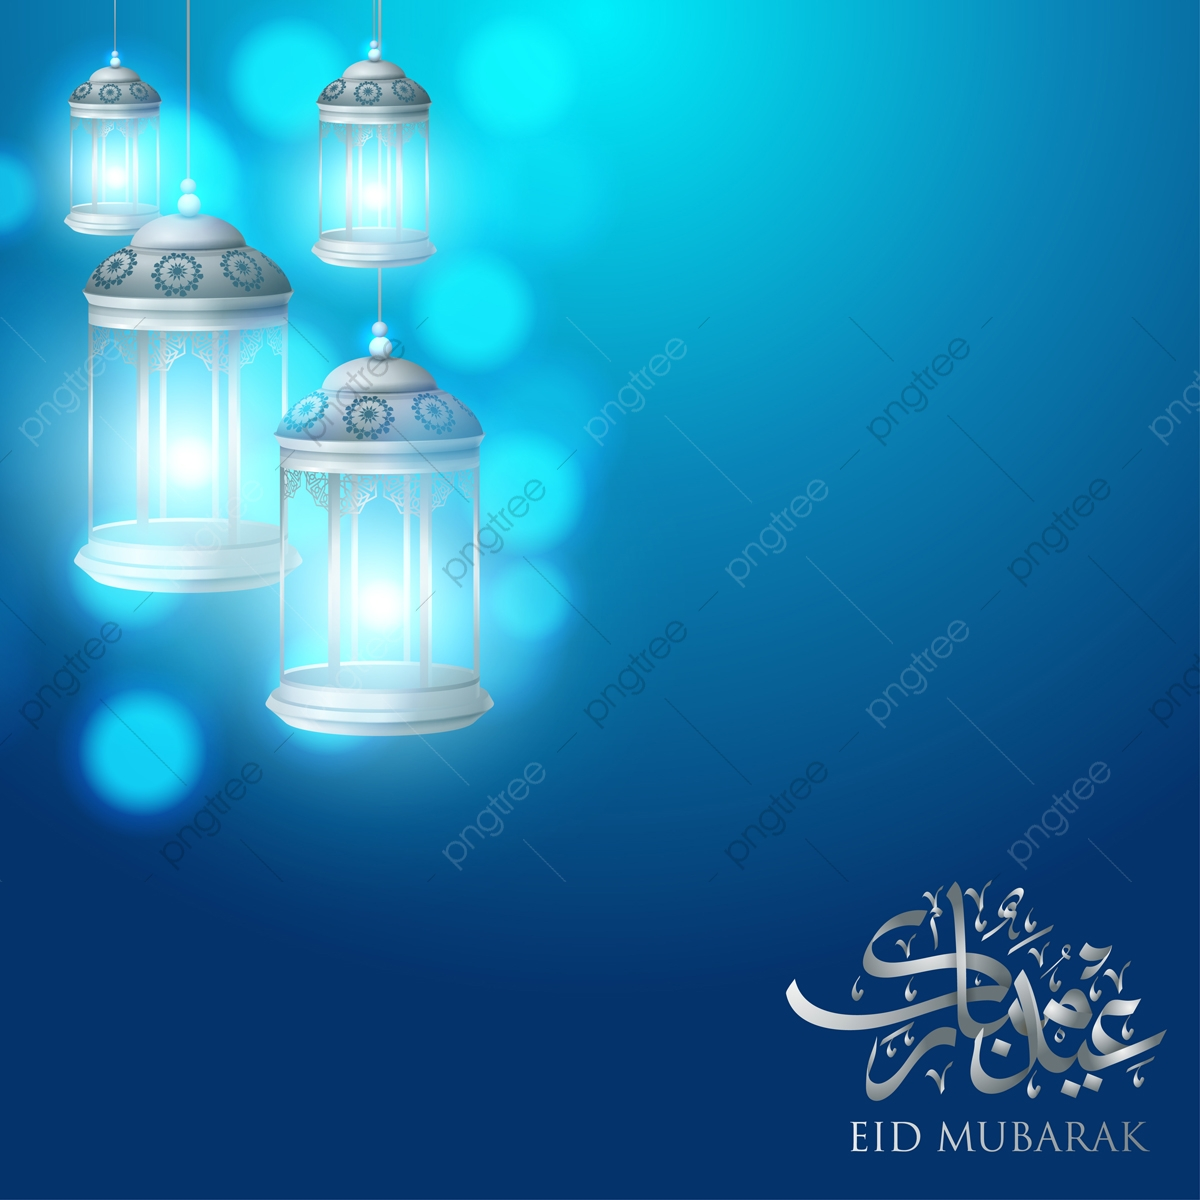 eid mubarak design background vector illustration for greeting card and card calligraphy png and vector with transparent background for free download https pngtree com freepng eid mubarak design background vector illustration for greeting card 4199329 html